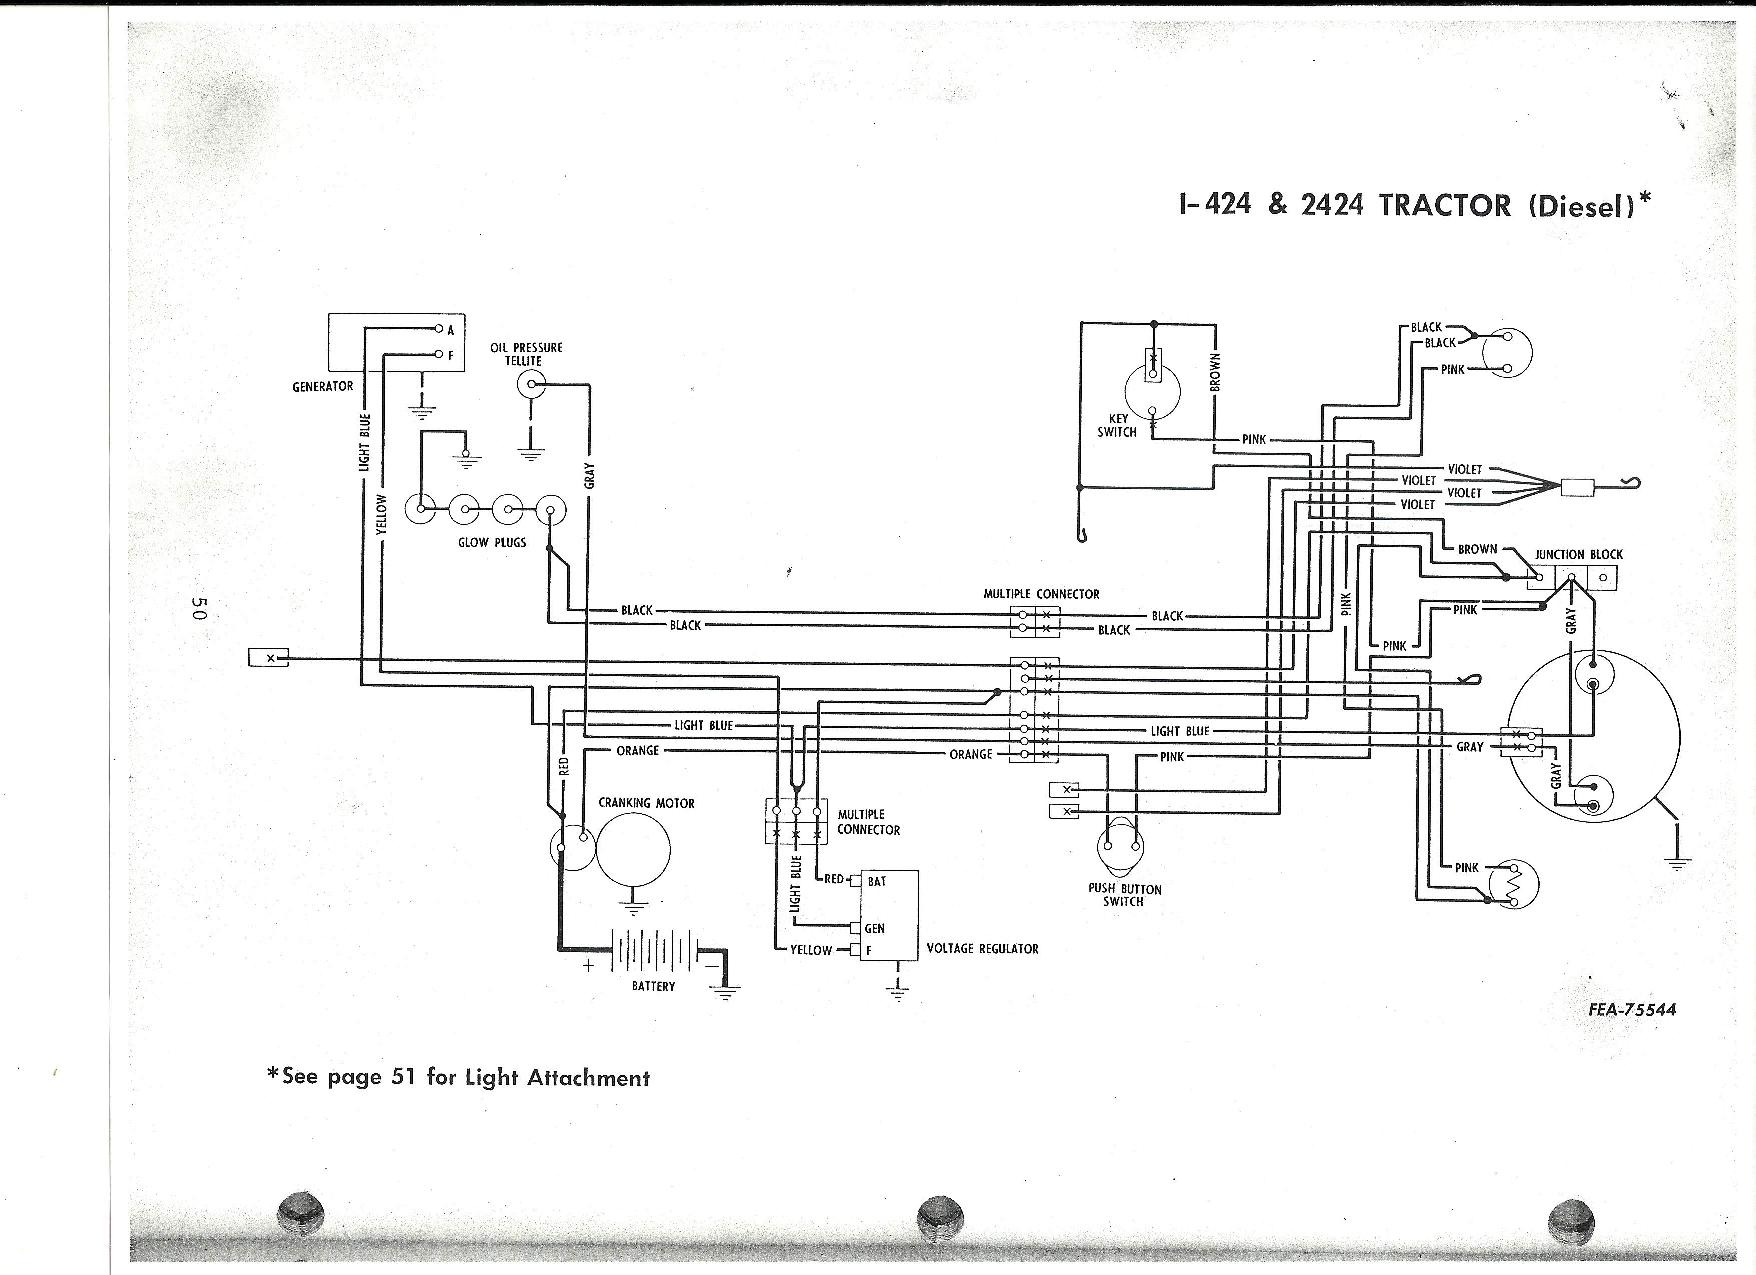 Case 444 Hydraulic Schematic